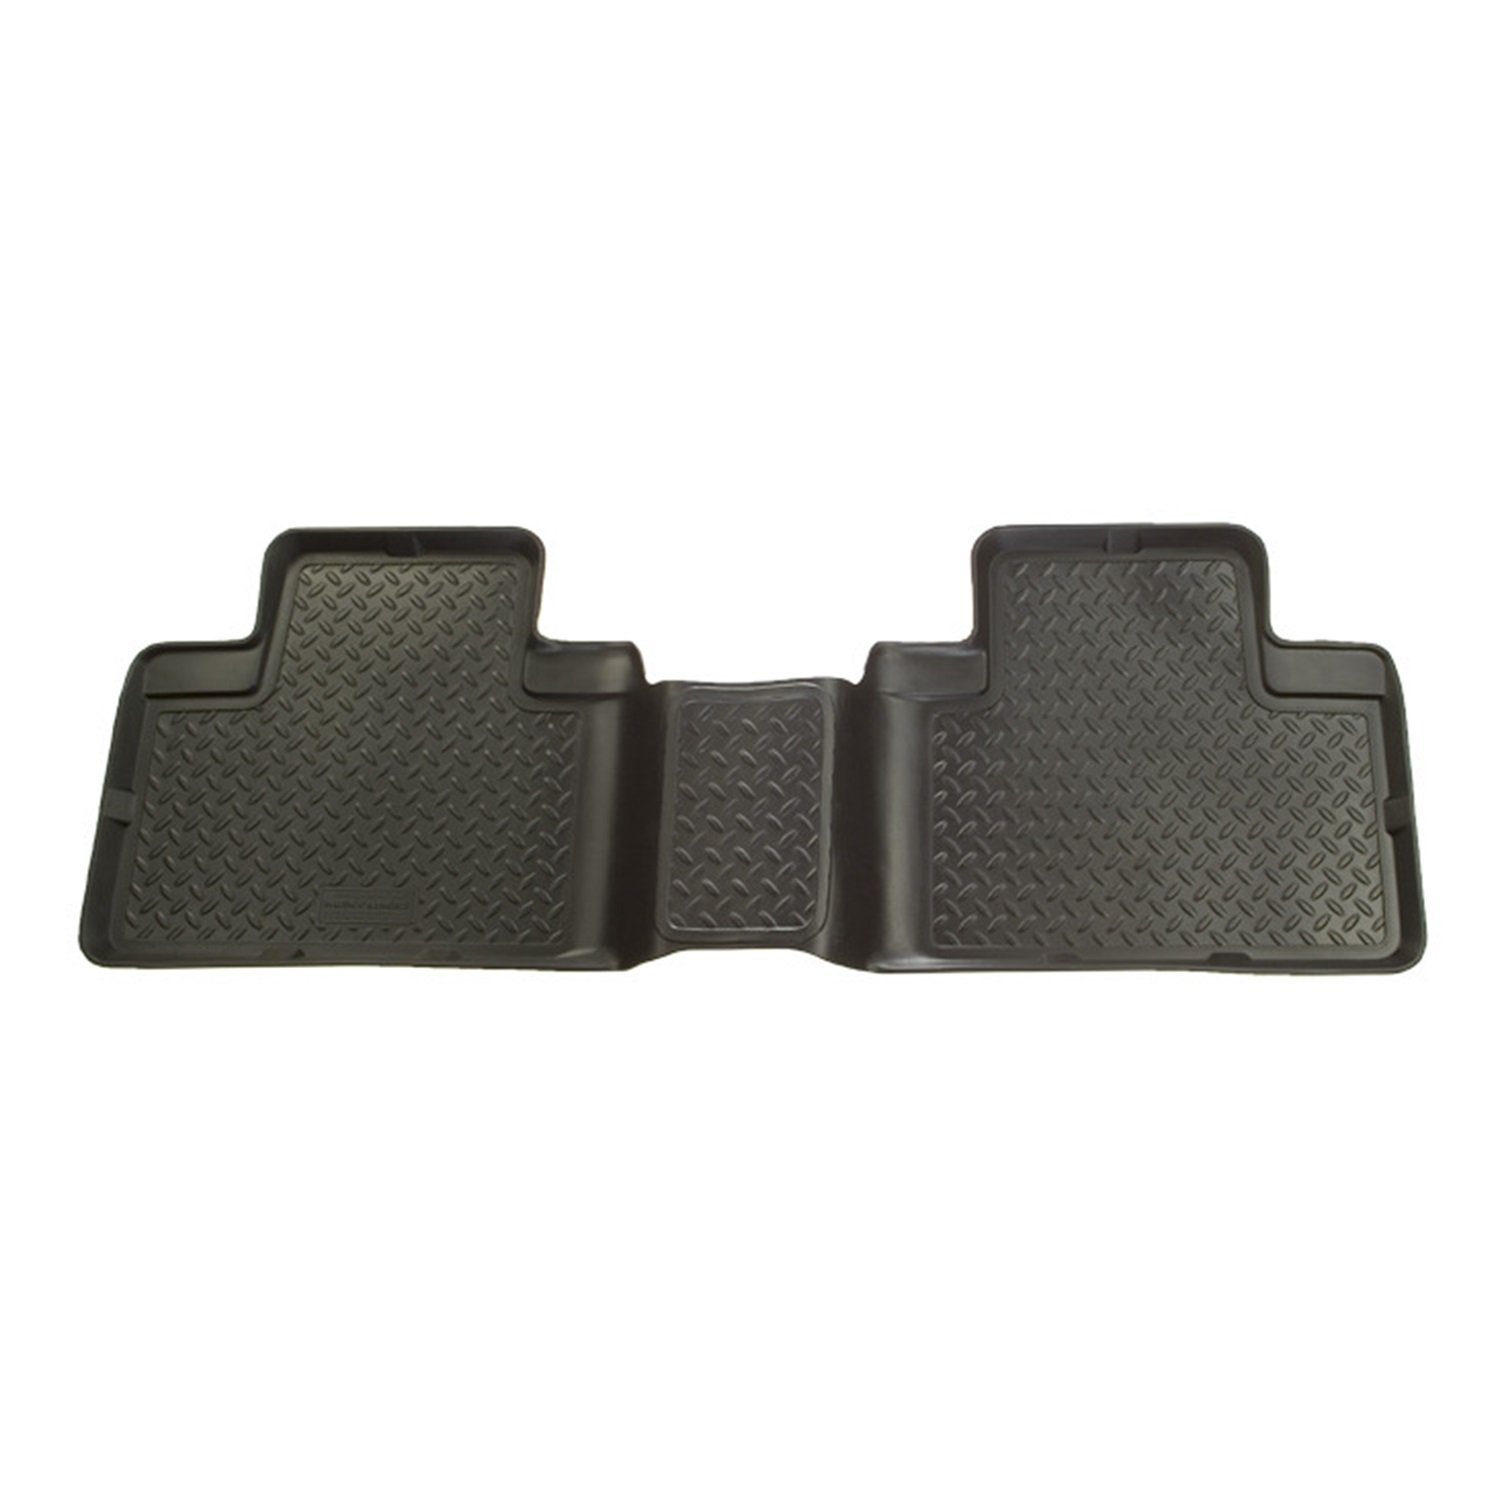 Husky Liners 3rd Seat Floor Liner Fits 00-05 Excursion Winfield Consumer Products 73911